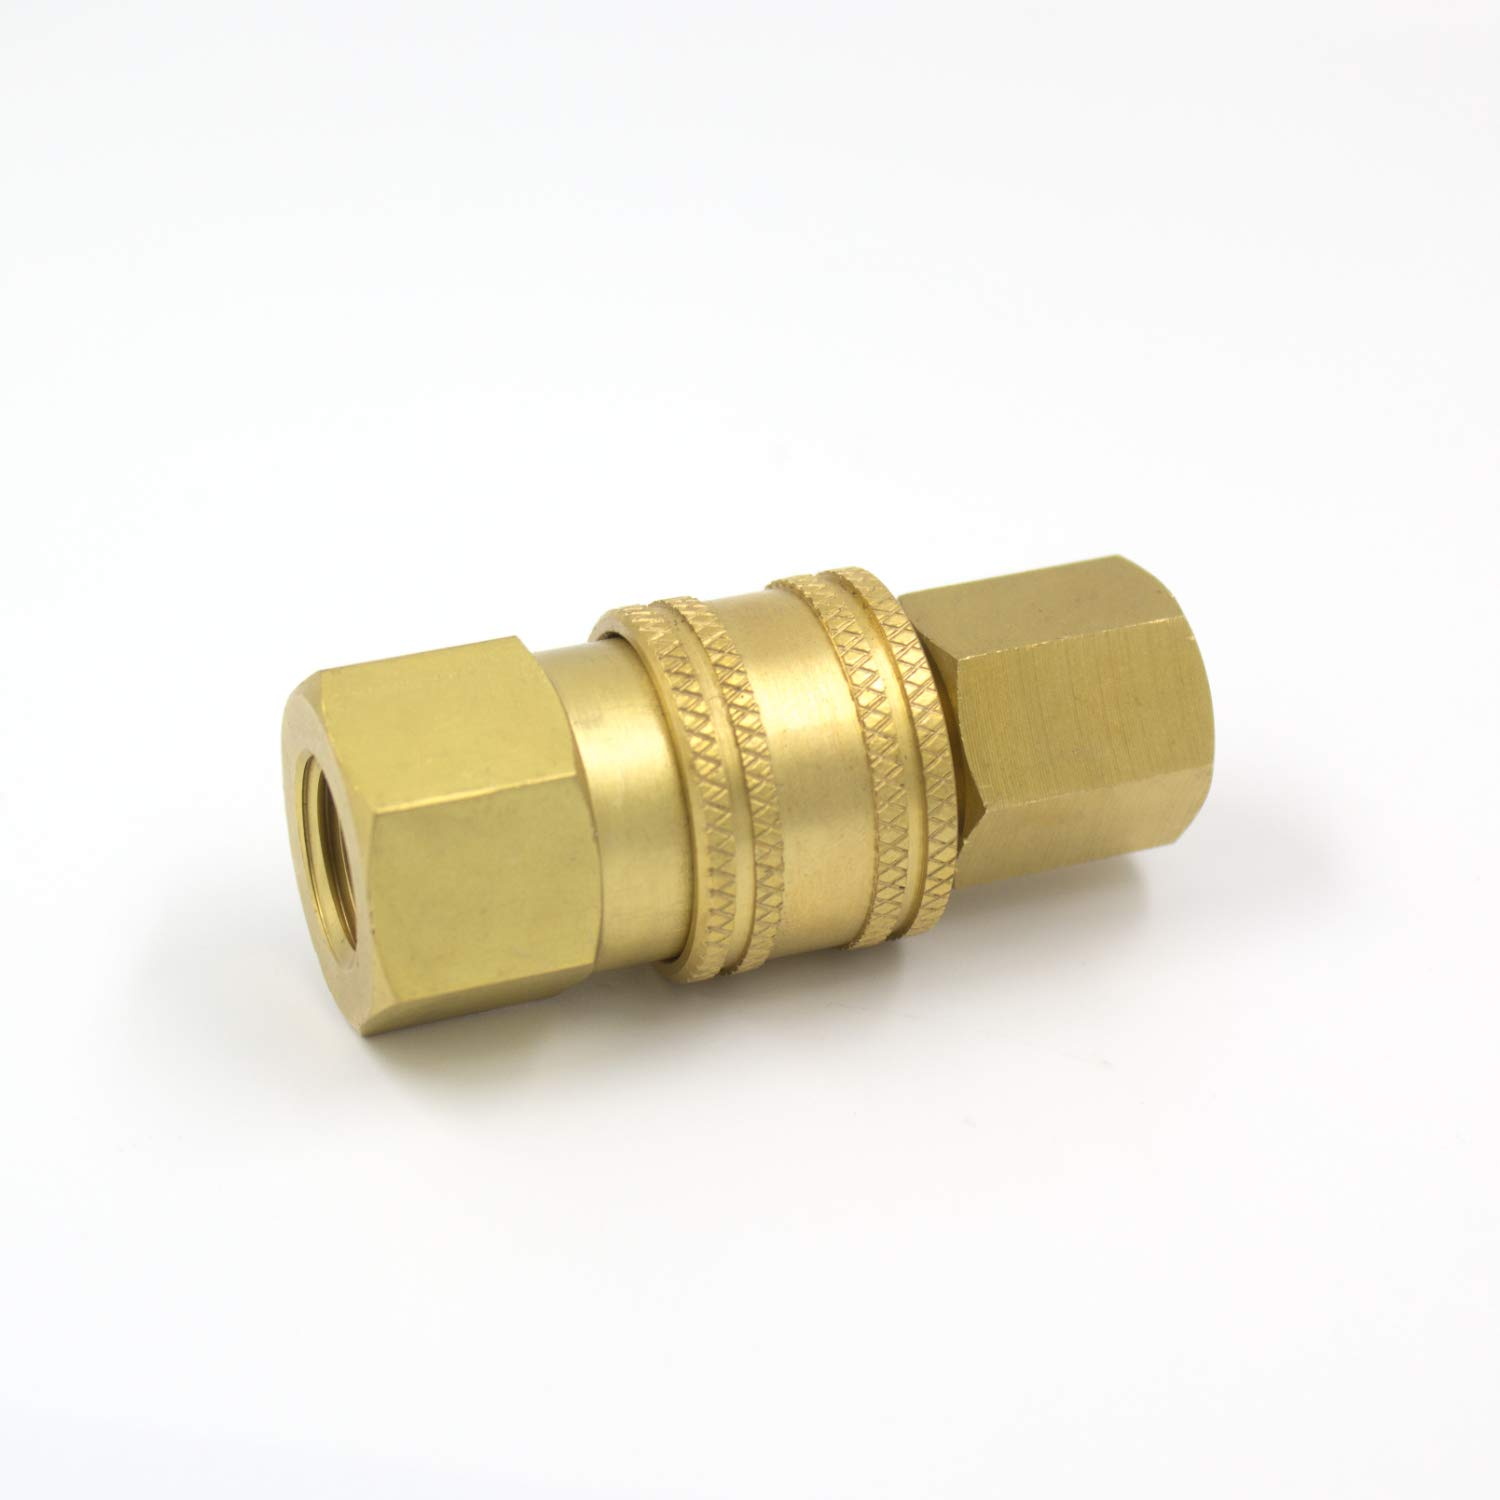 AKJia Pressure Washer Brass Quick Coupler Fittings,1//4 Inch Quick Coupler